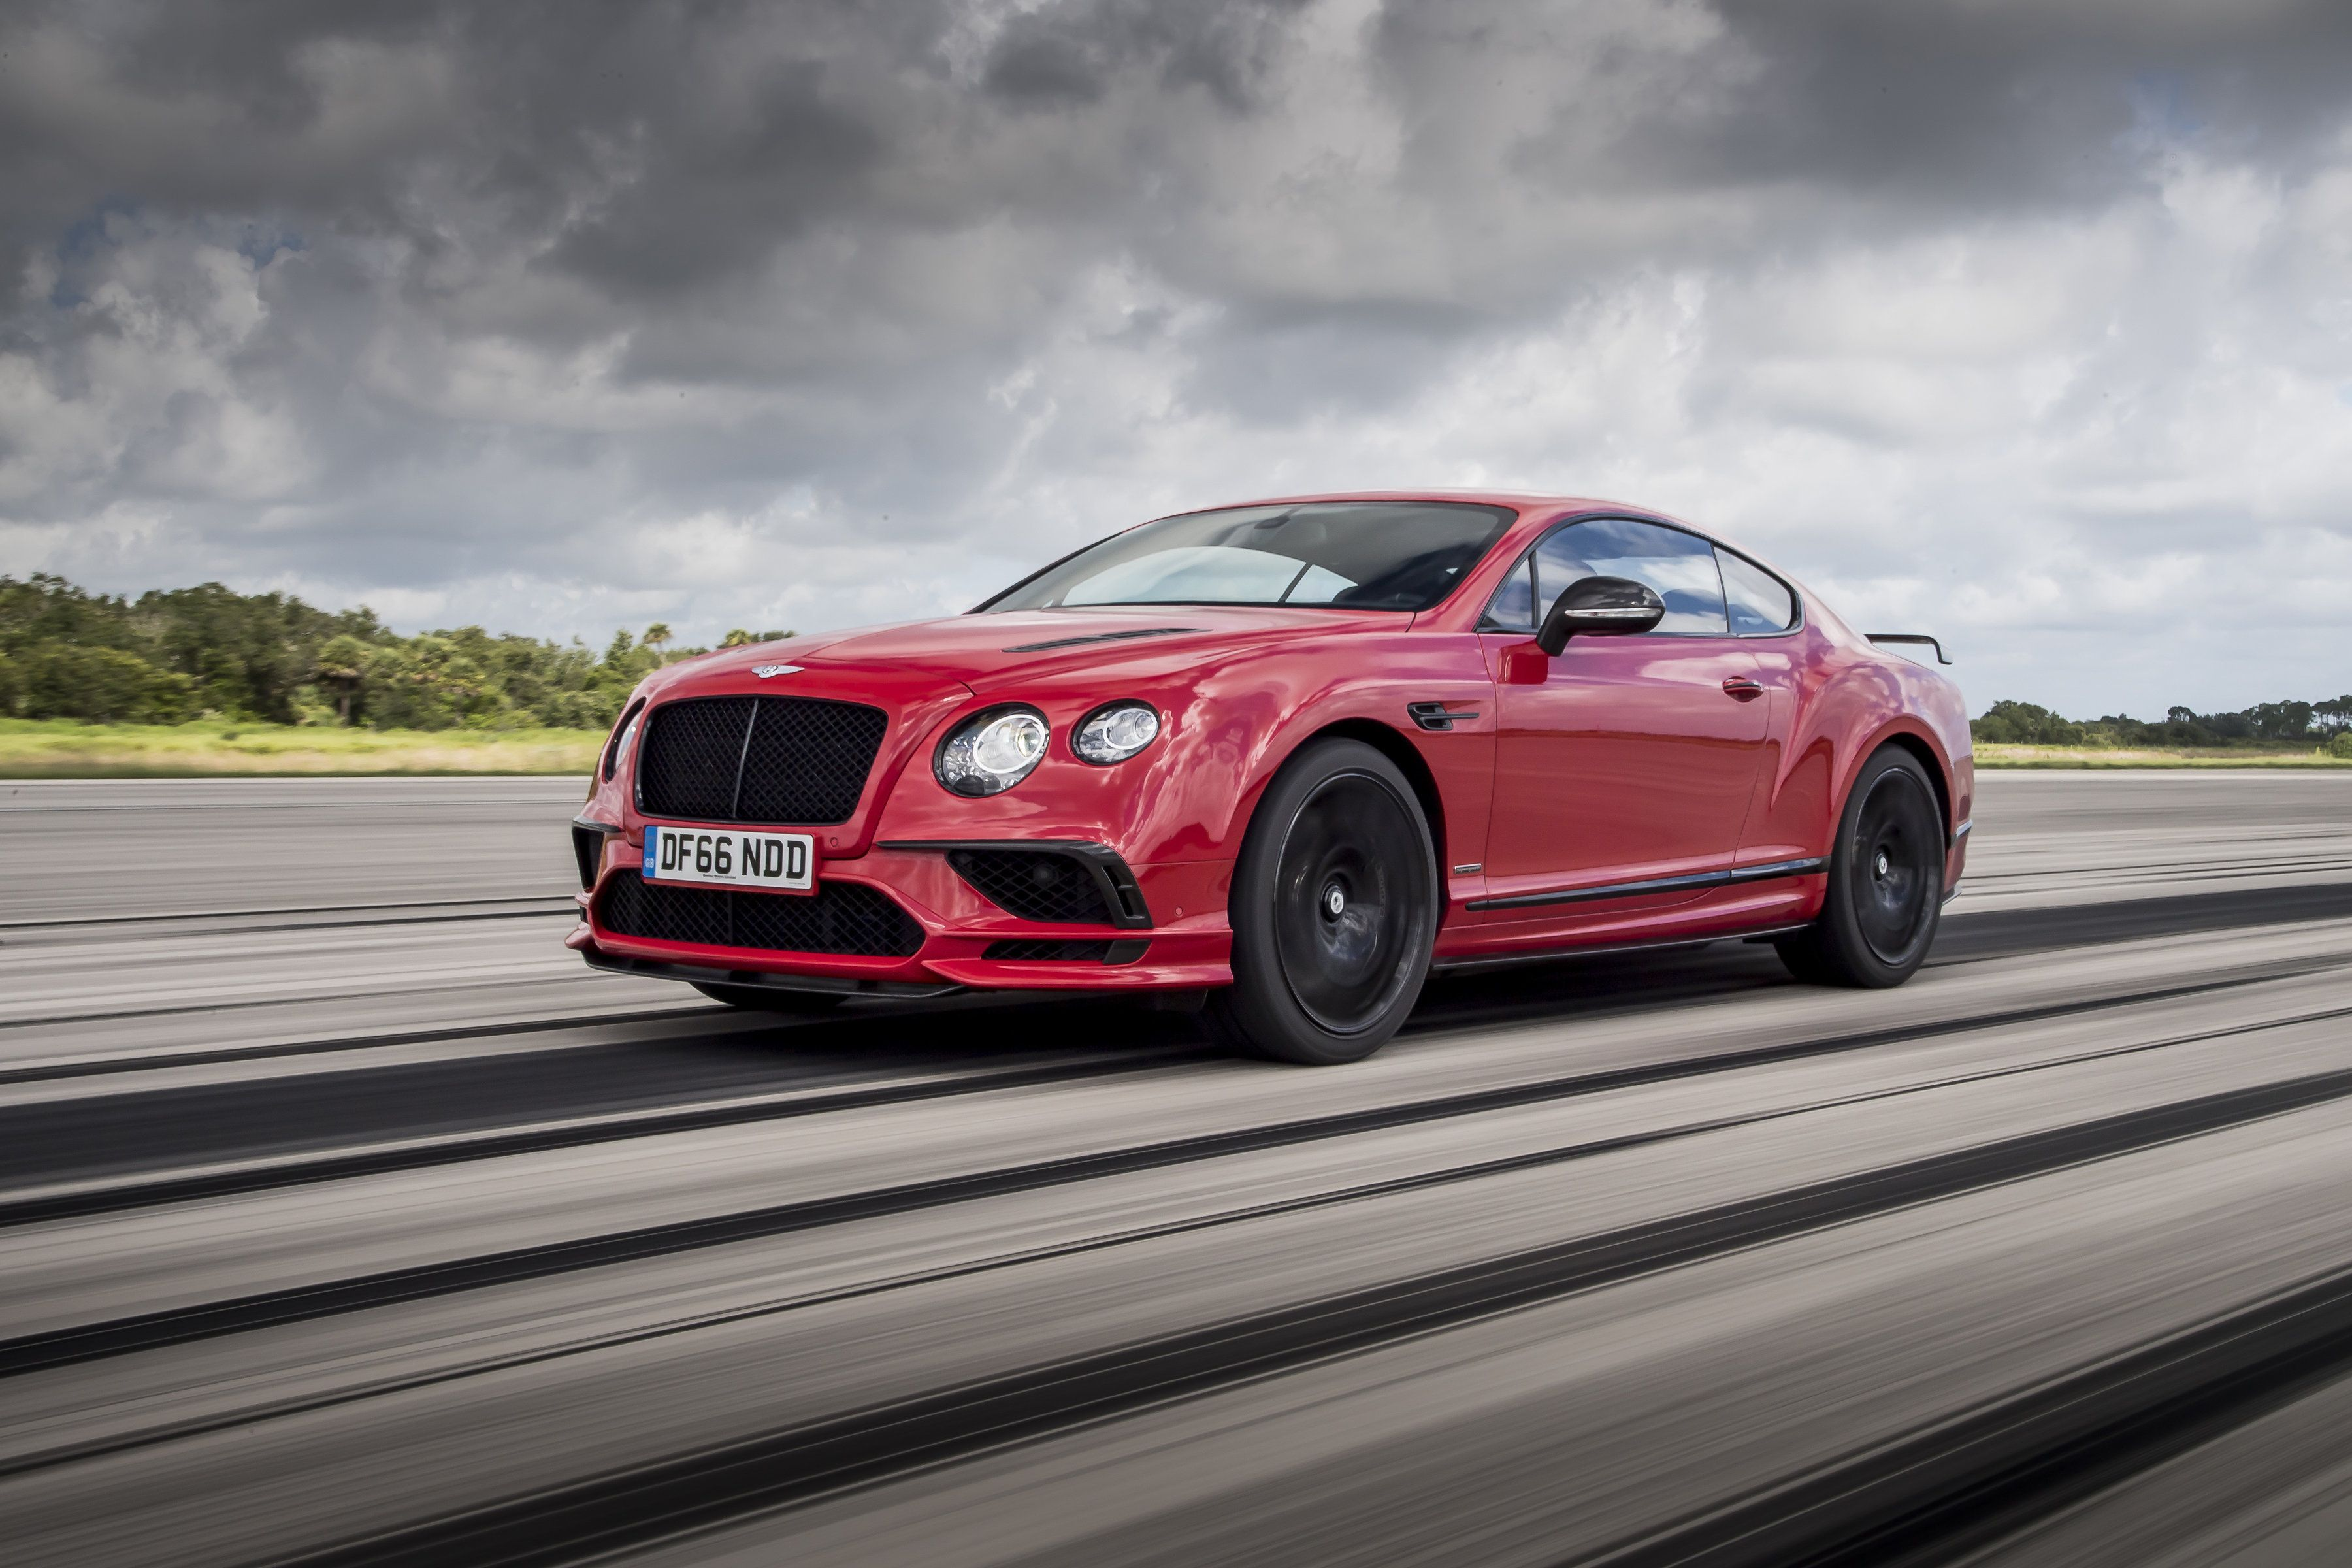 motor limited geneva kember links gtc announced the tony in at production was airmatic supersports of car lowering unveiled continental show february convertible gt bentley